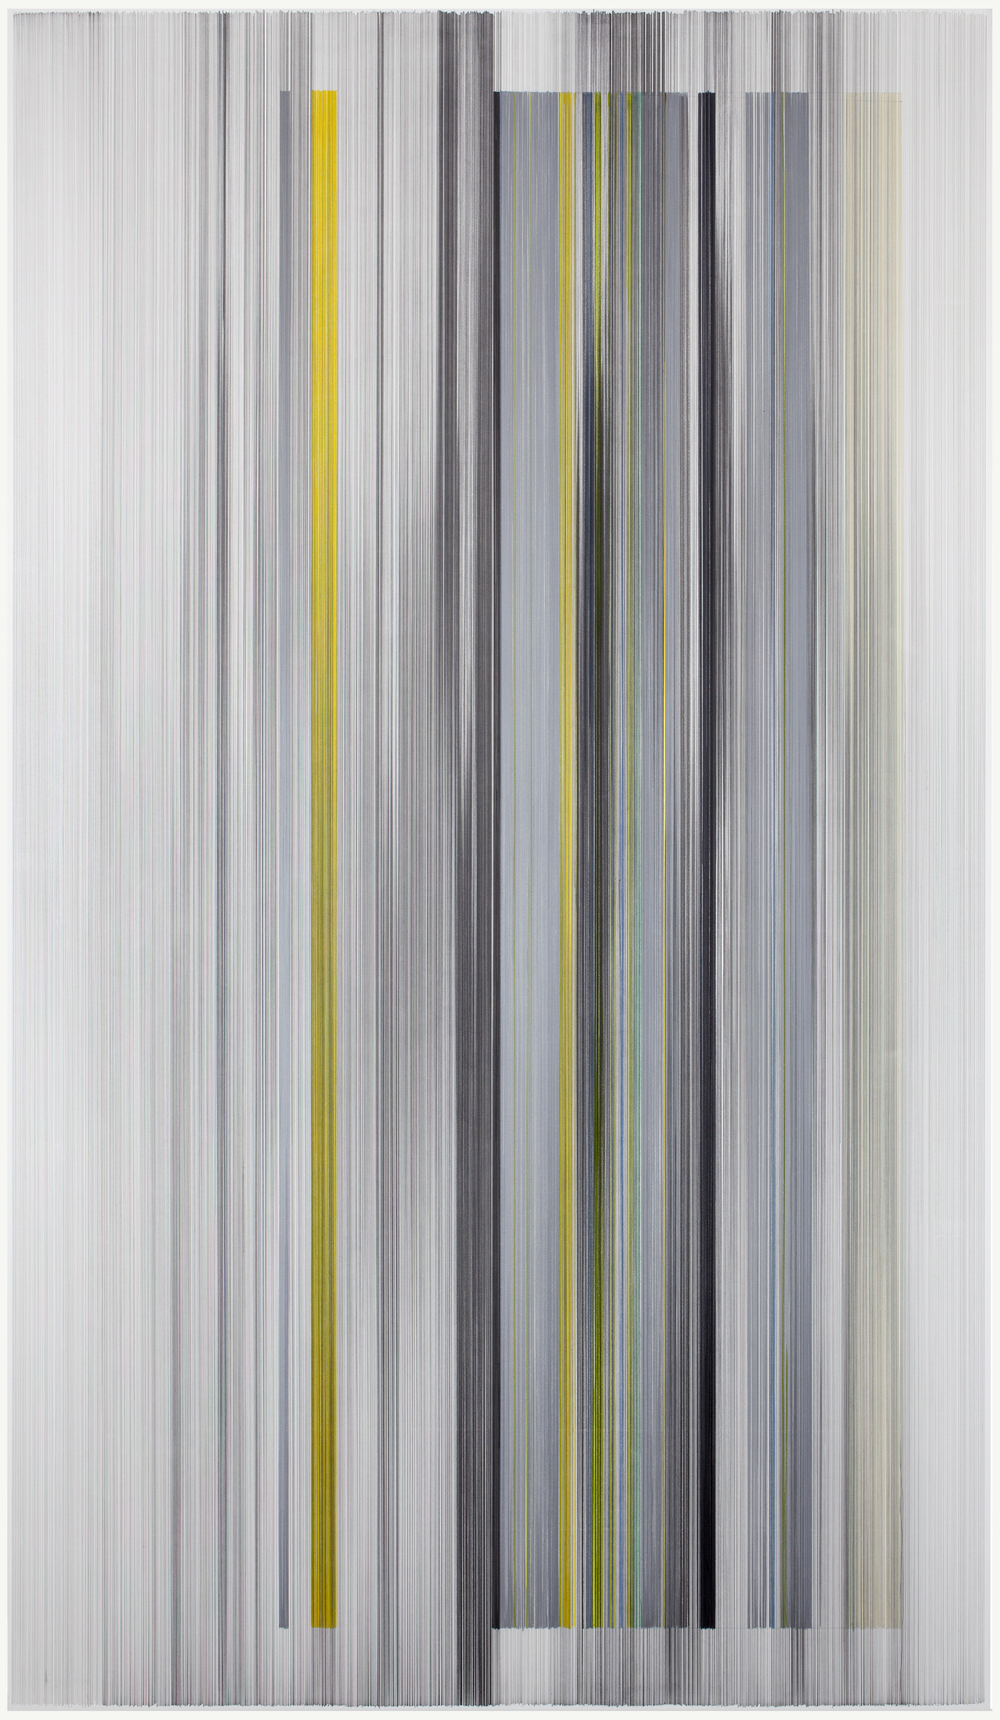 unfold 22   2016   graphite & colored pencil on mat board   59 by 102 inches